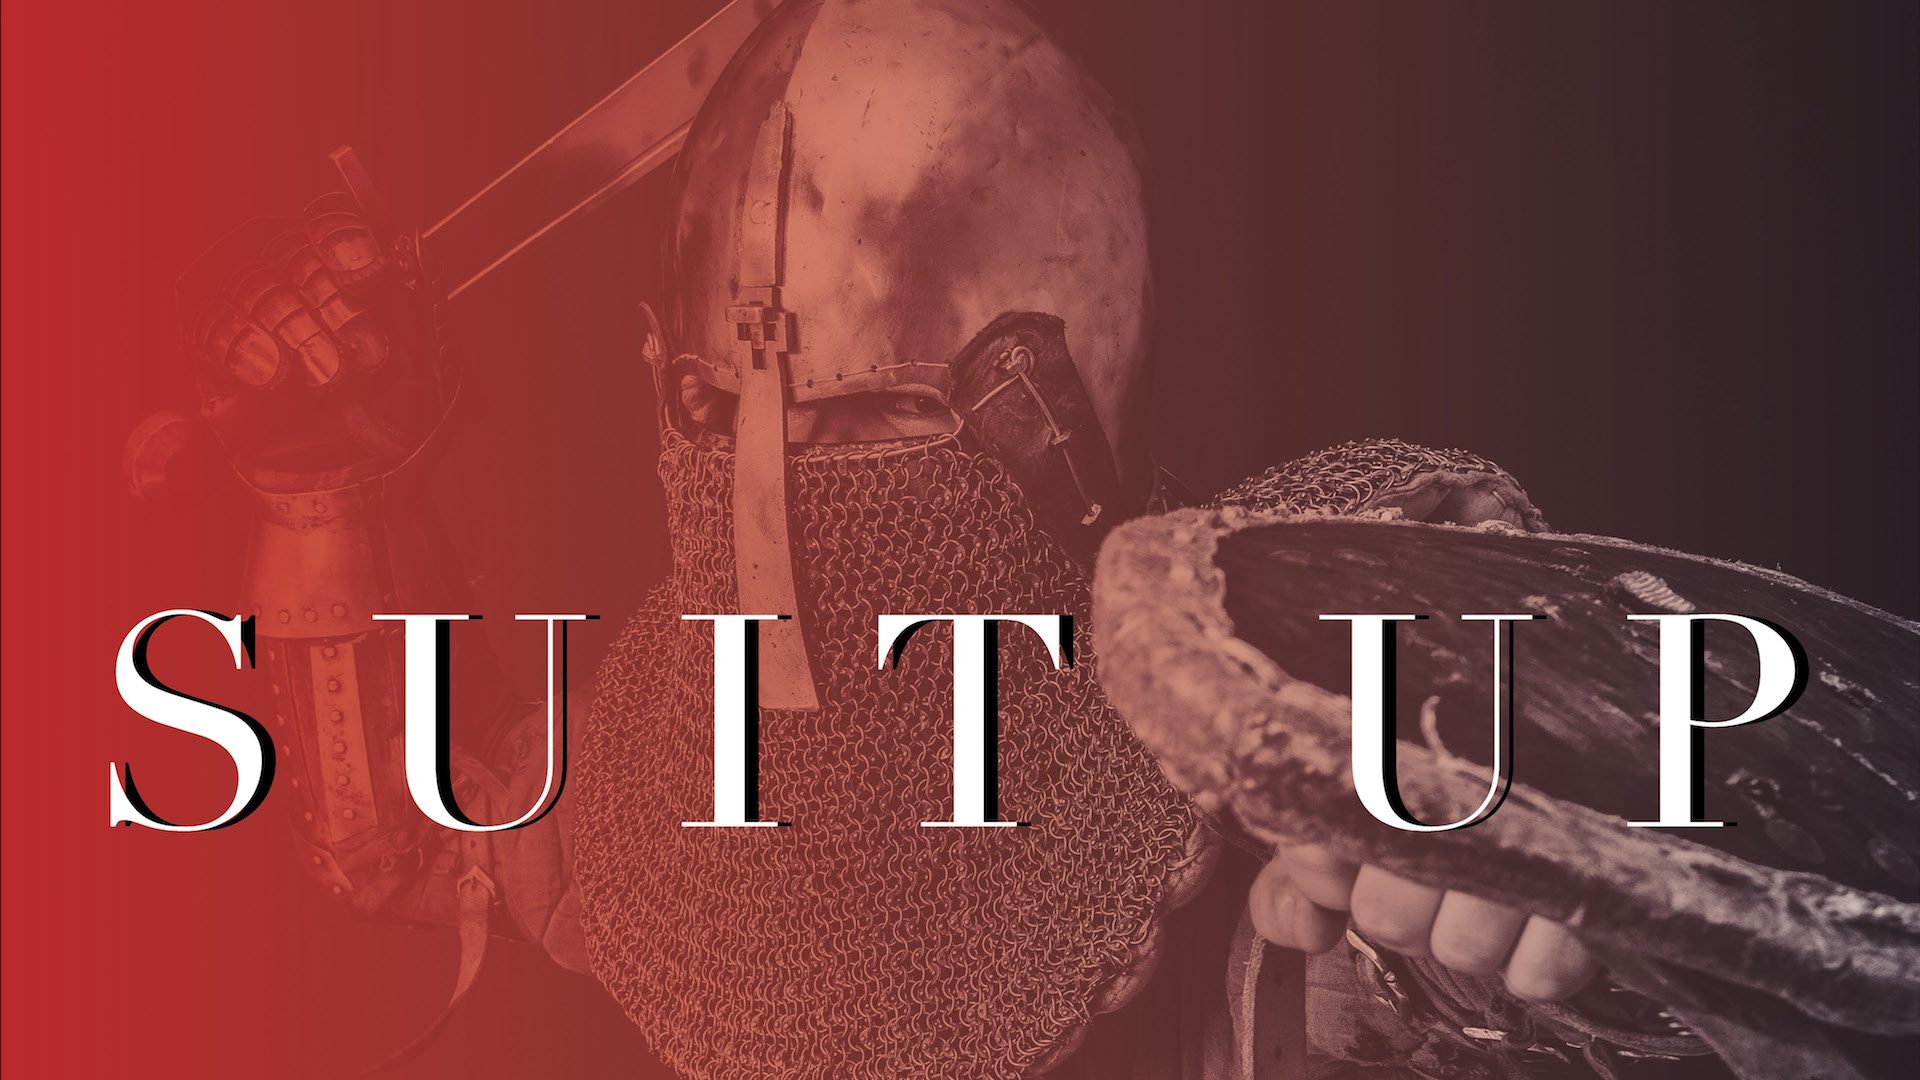 Suit Up Sermon Graphic.jpg